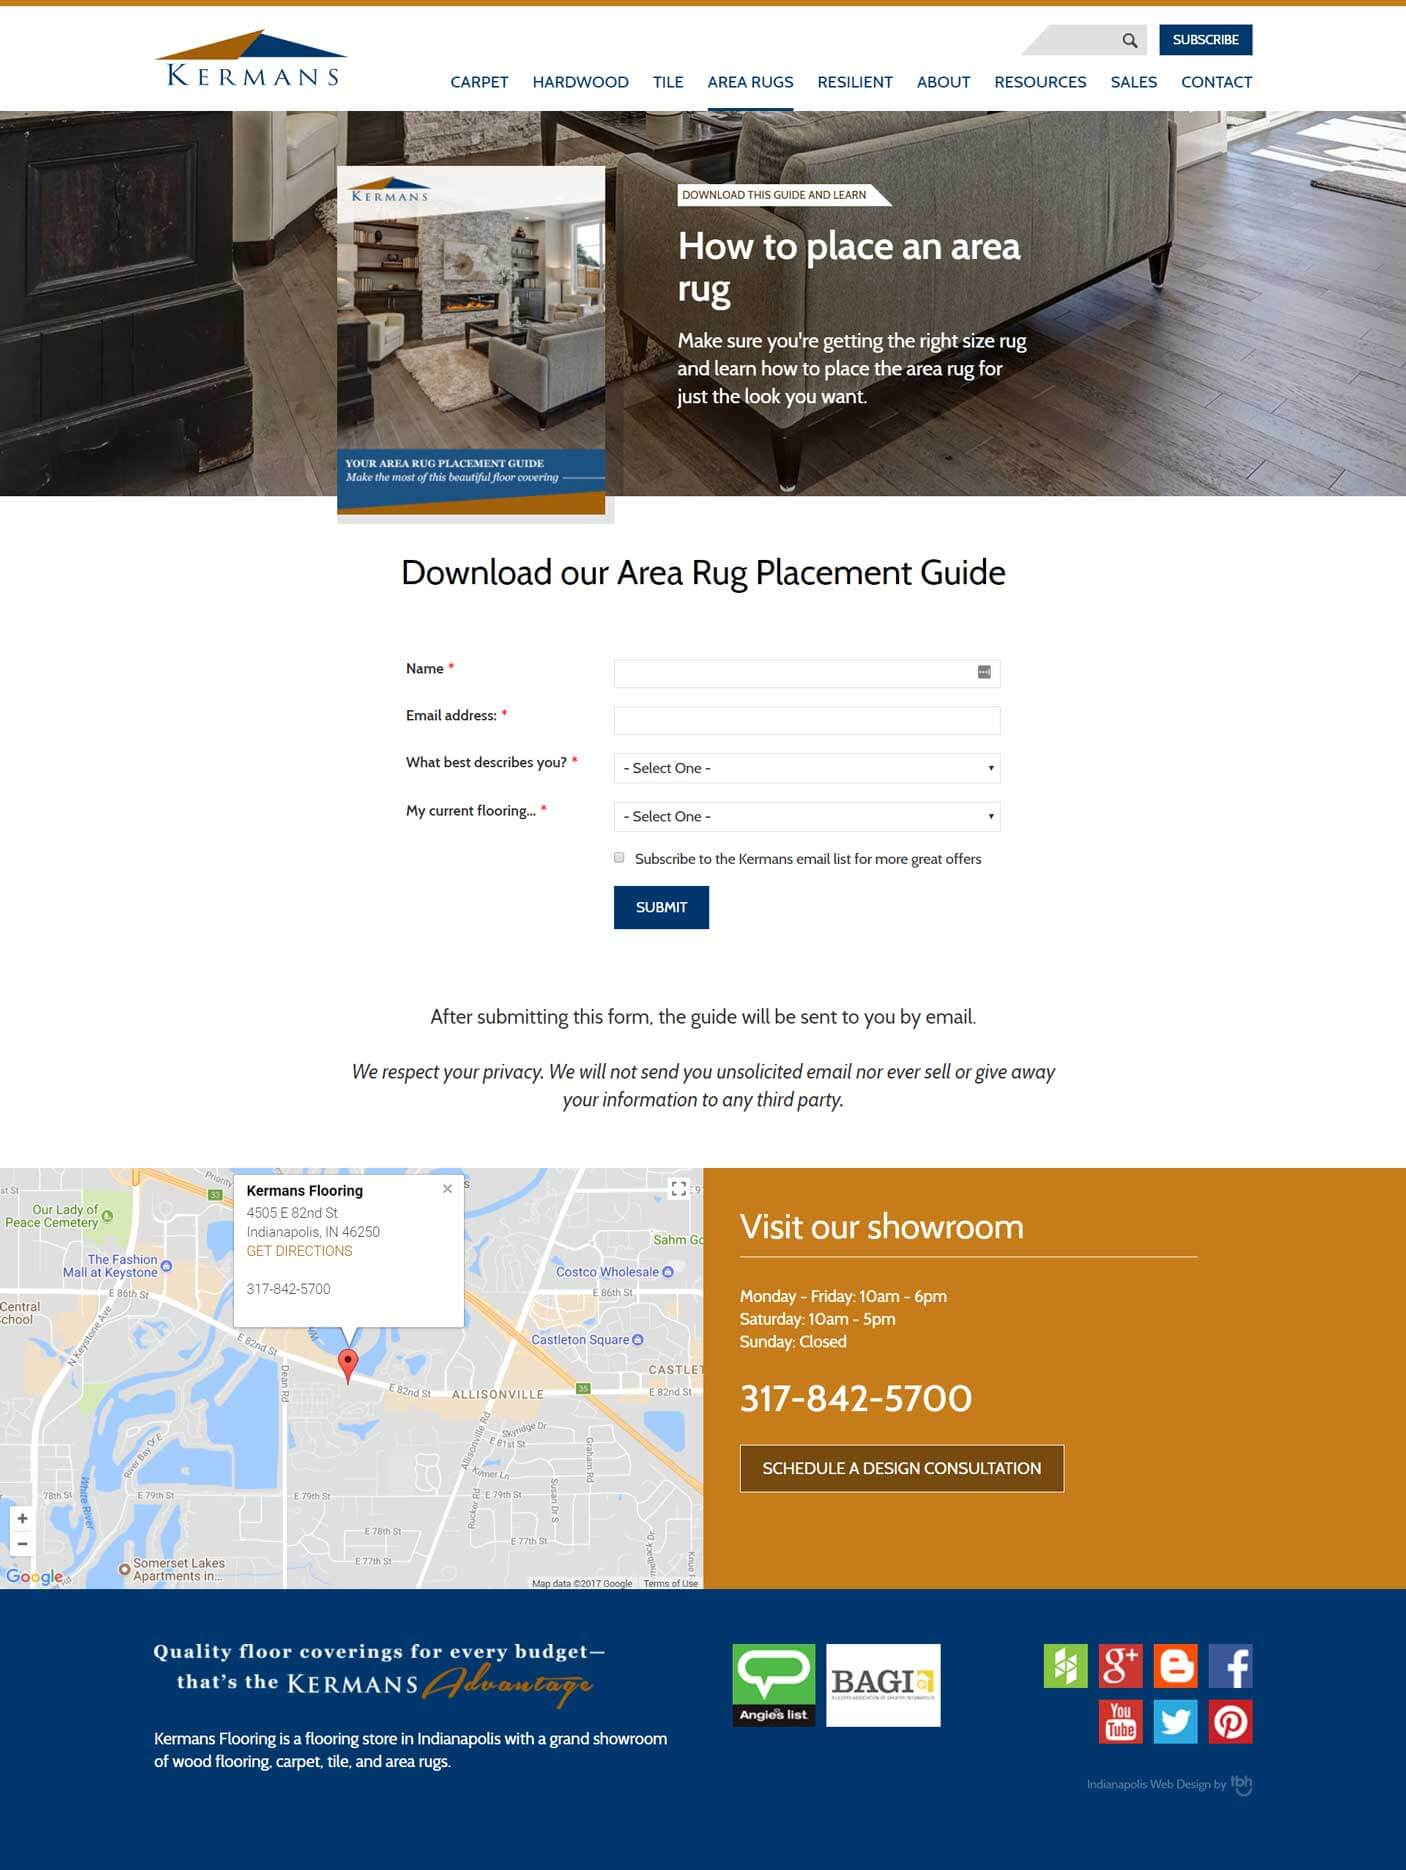 Area Rug Placement Guide landing page